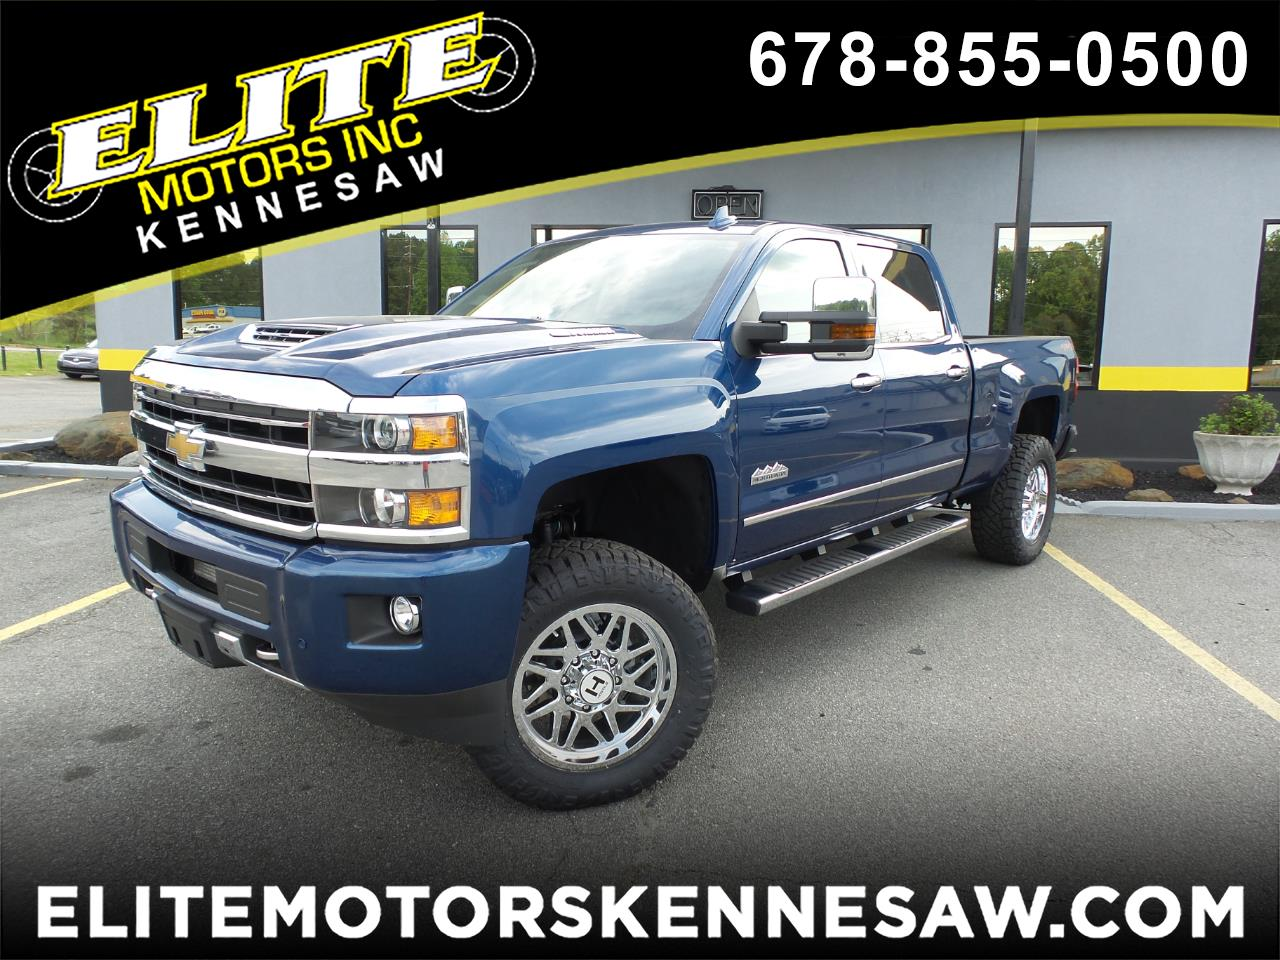 2019 Chevrolet Silverado 3500HD High Country Crew Cab 4WD